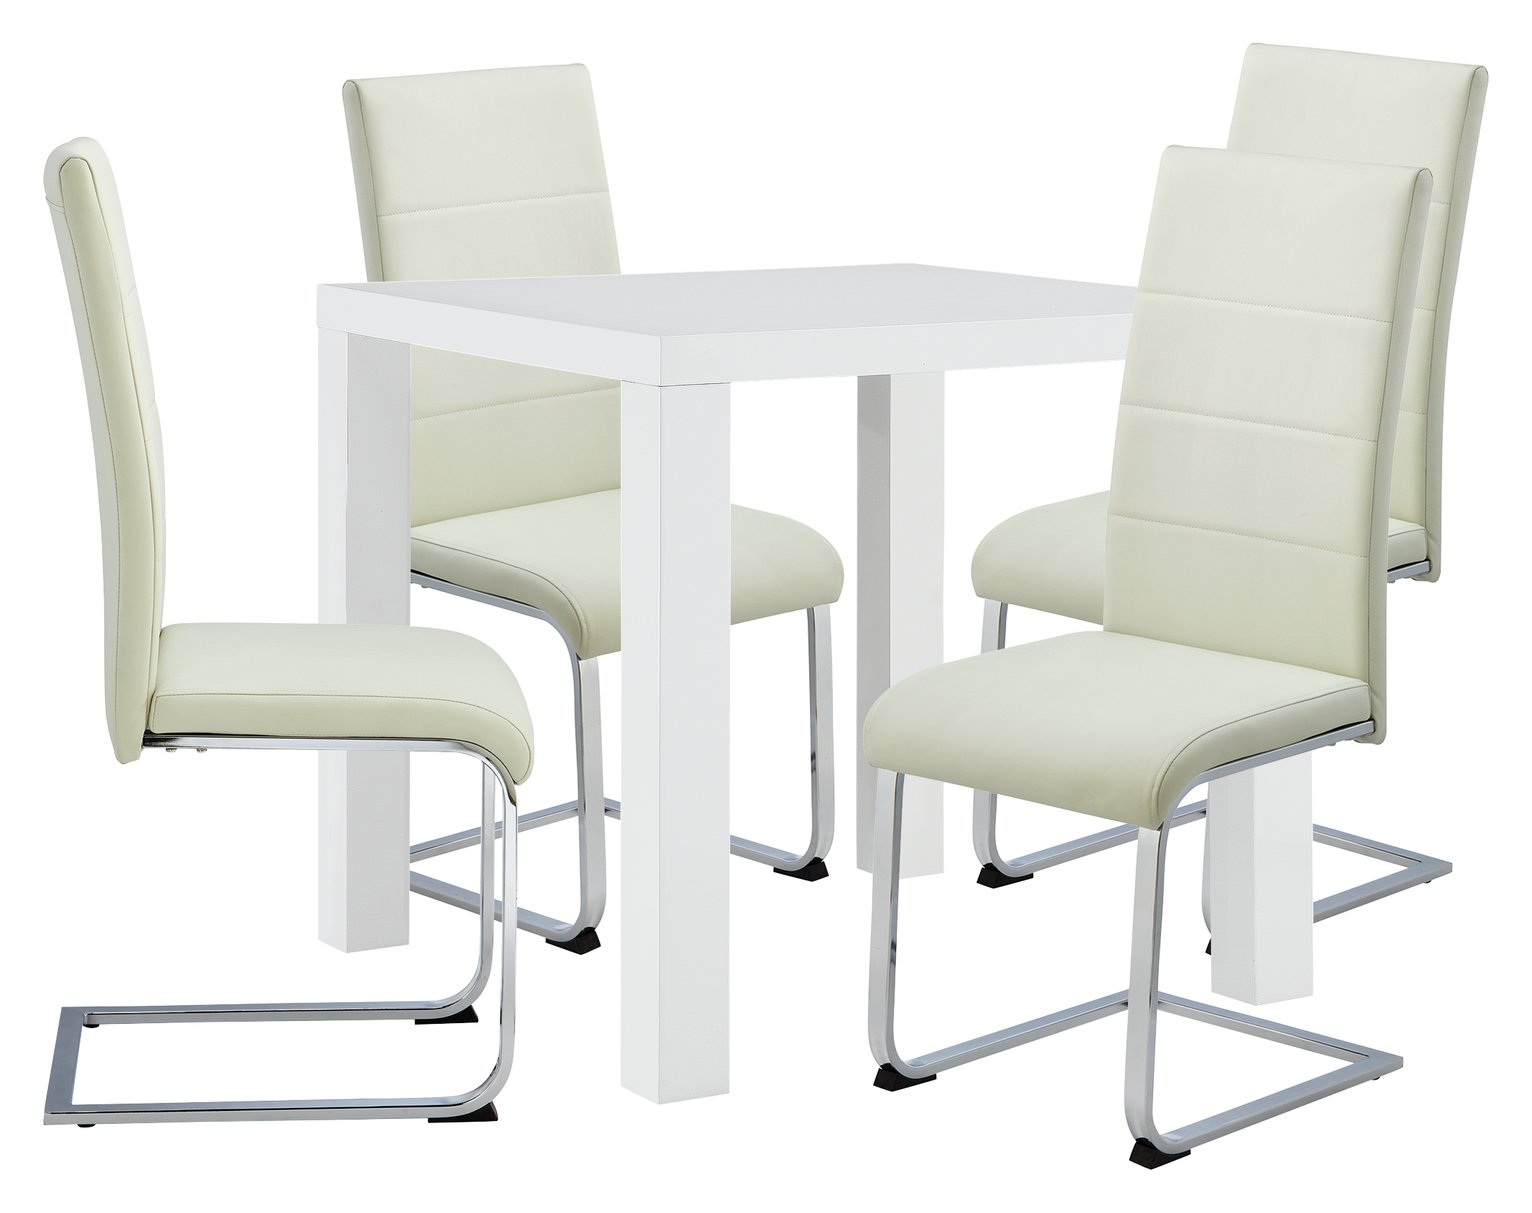 Image of Hygena Lyssa Dining Table & 4 Chairs - White